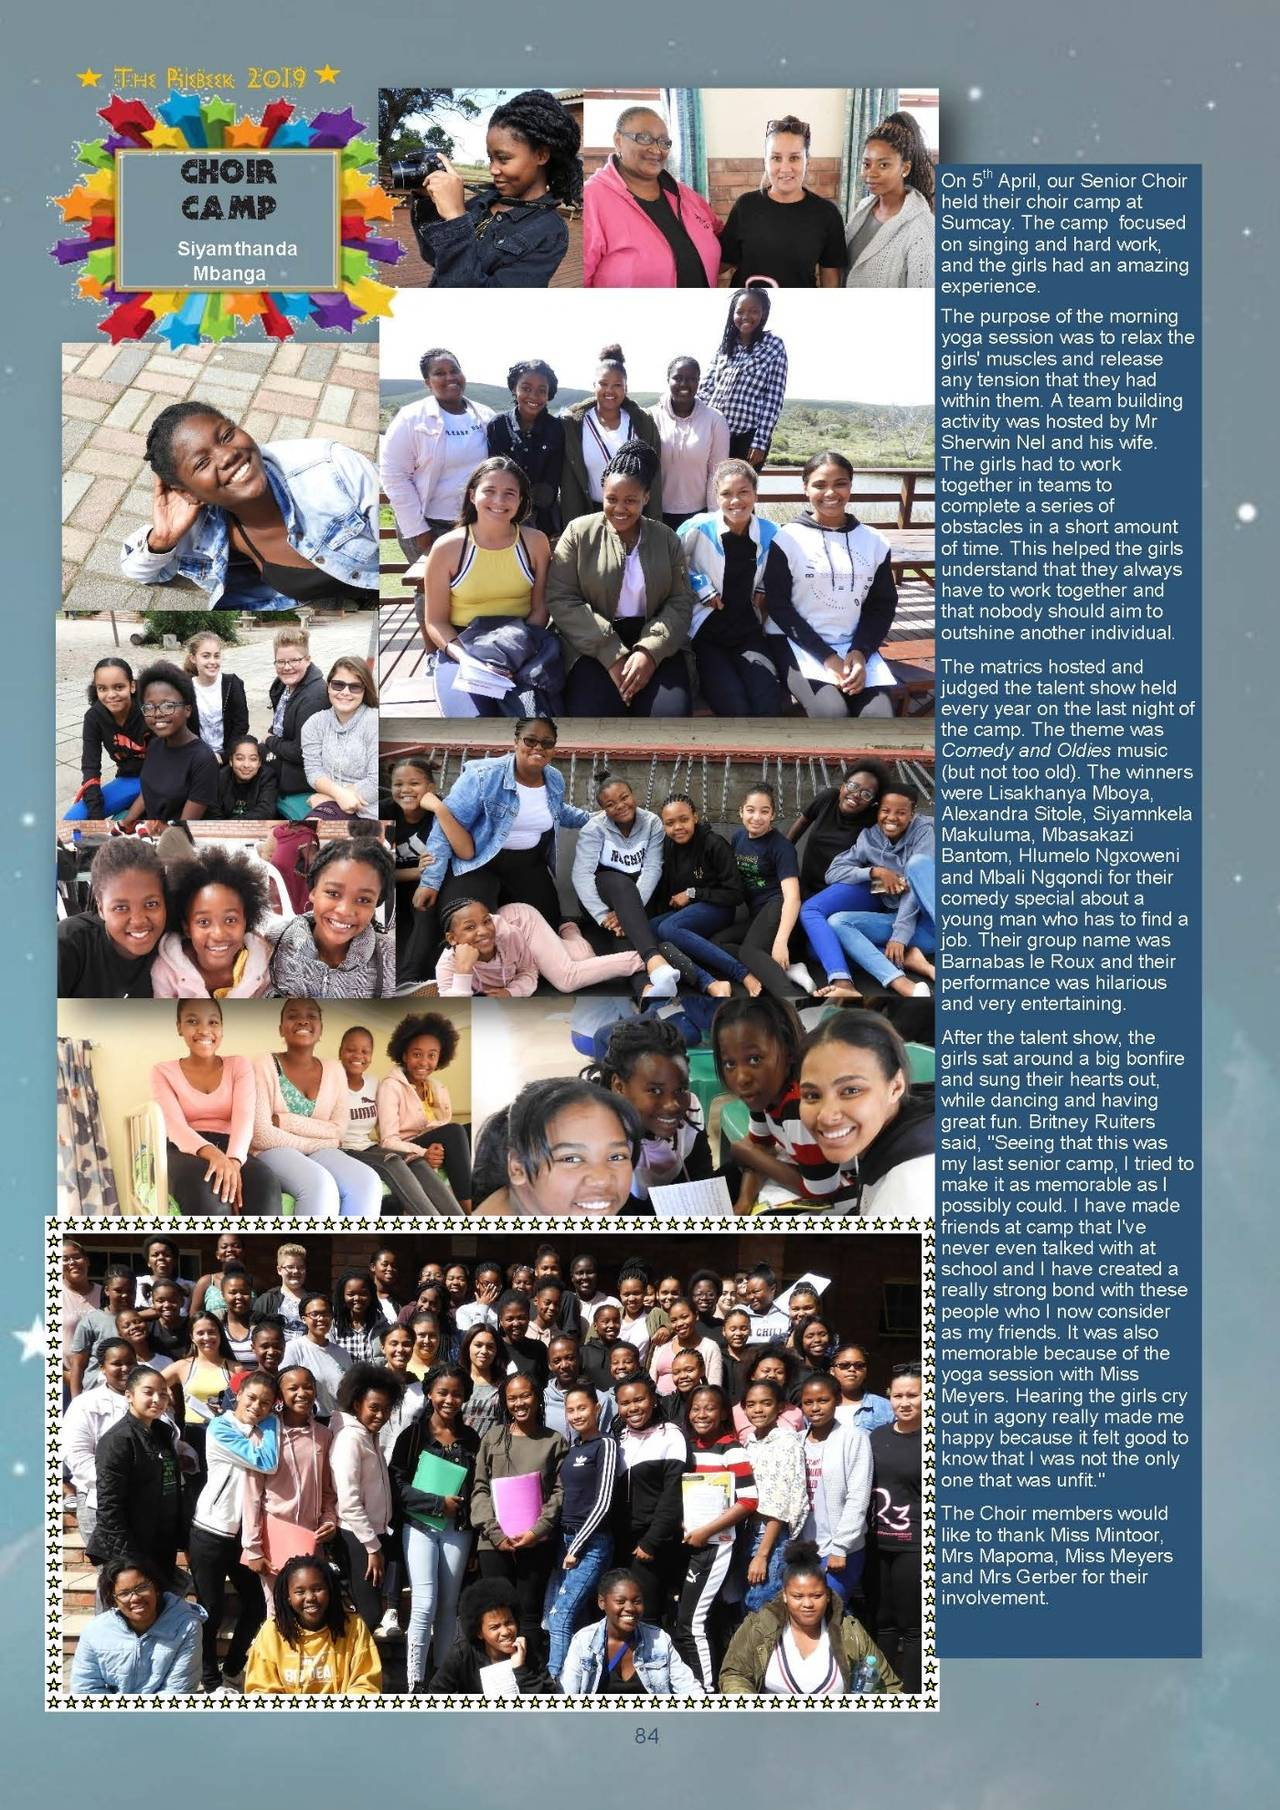 riebeek all pagespage084